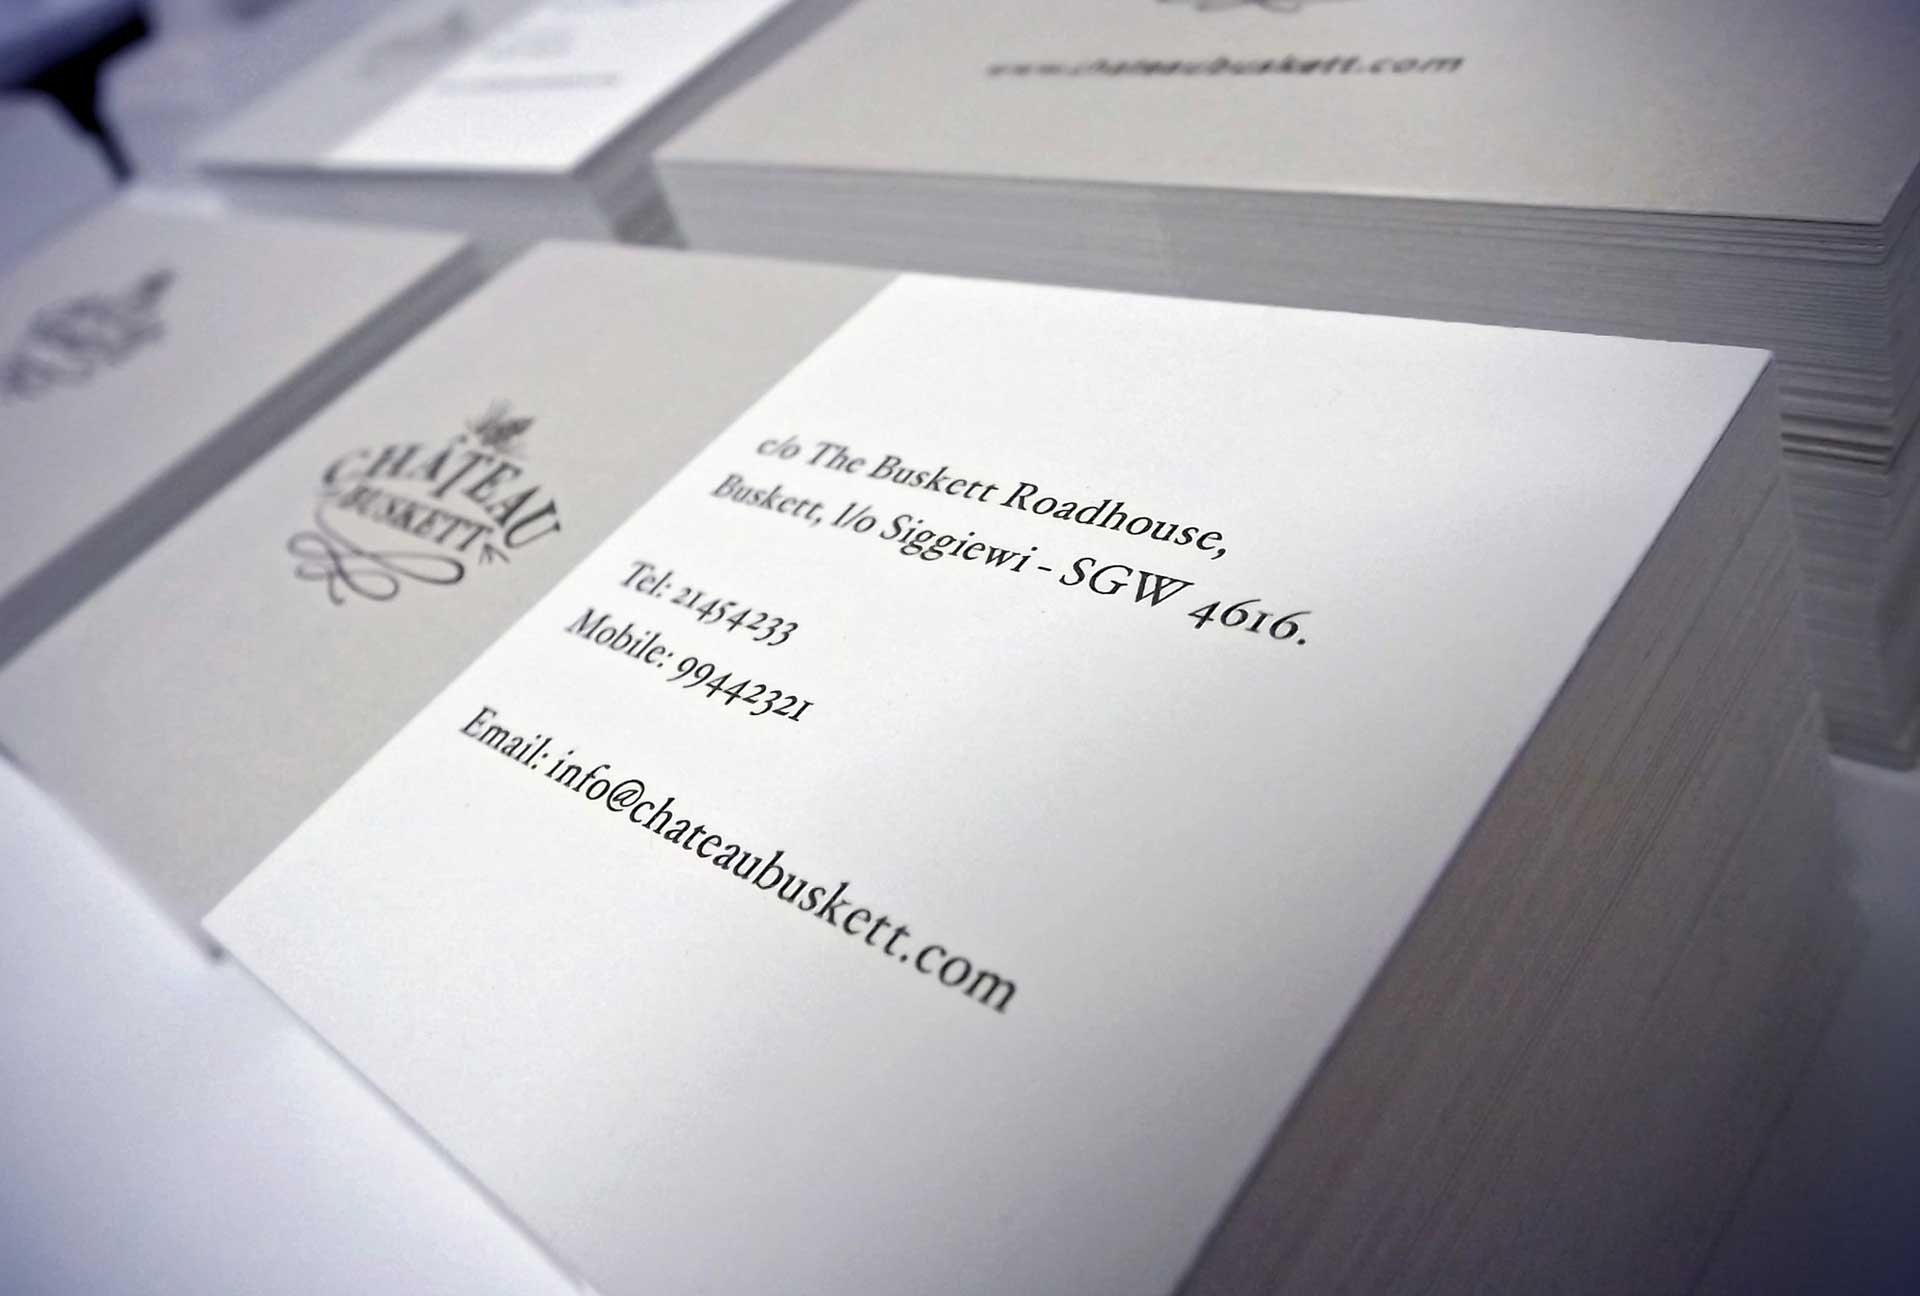 Business Cards - Chateau Buskett